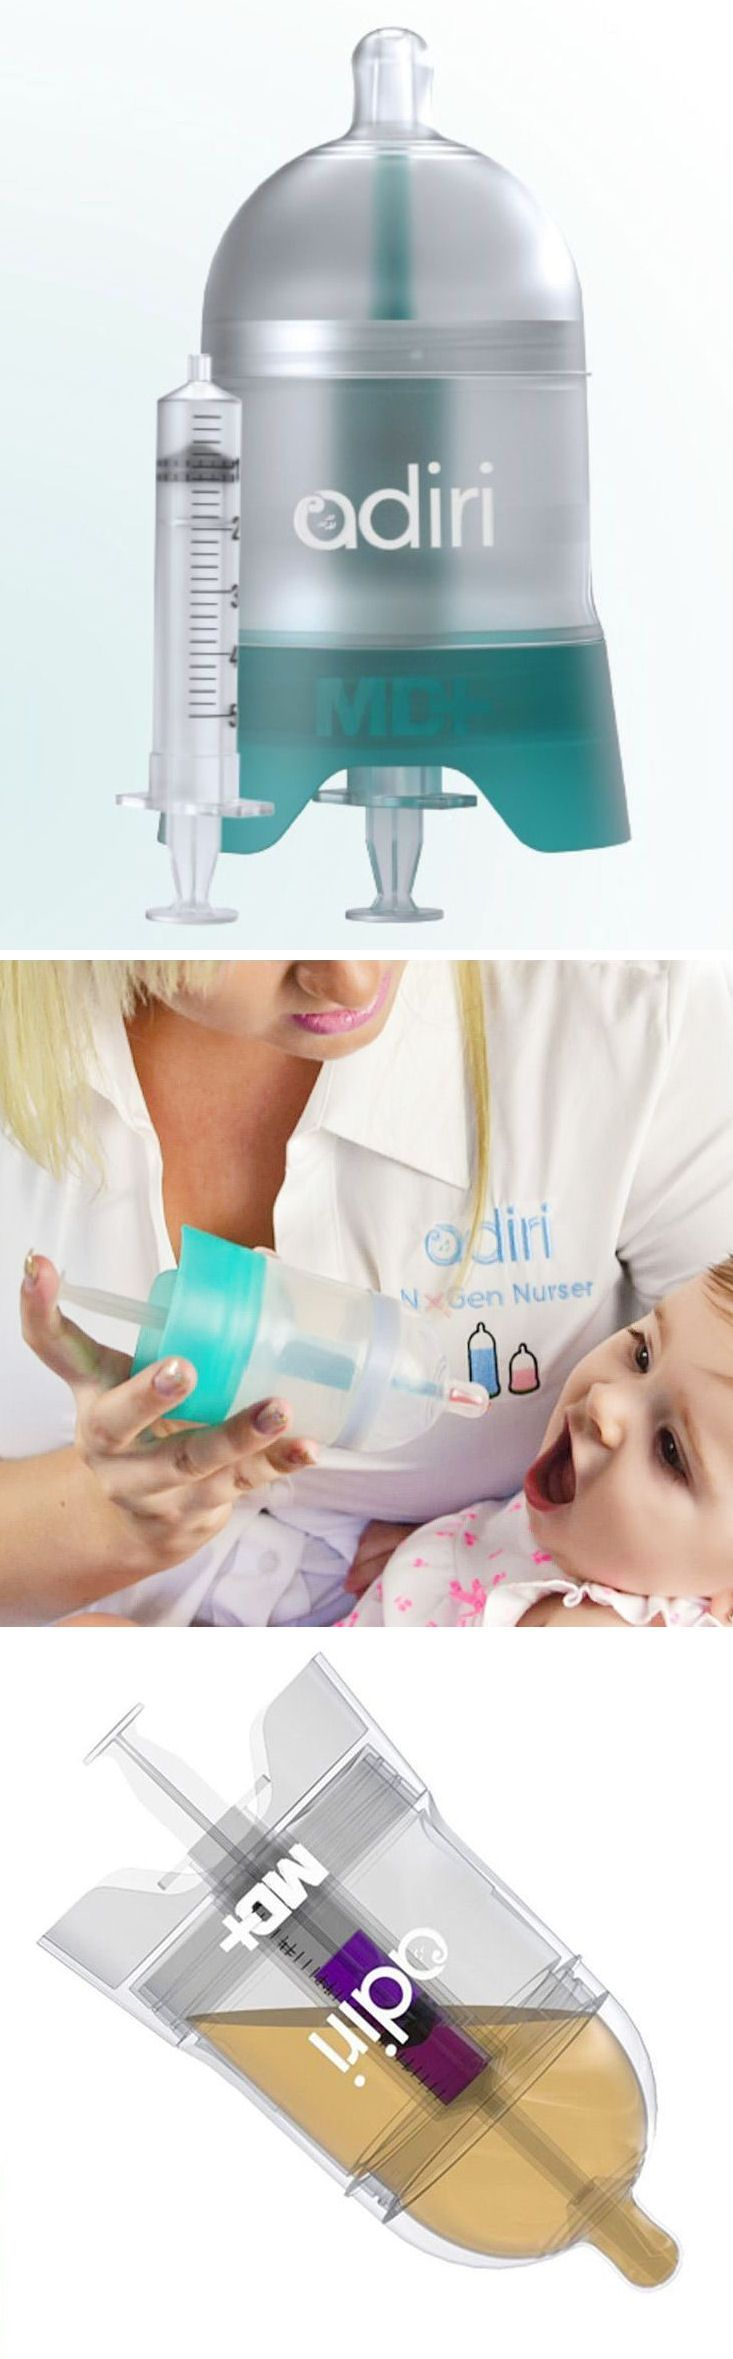 Adiri Medicine Delivery System- take the stress out of giving your little one medicine!